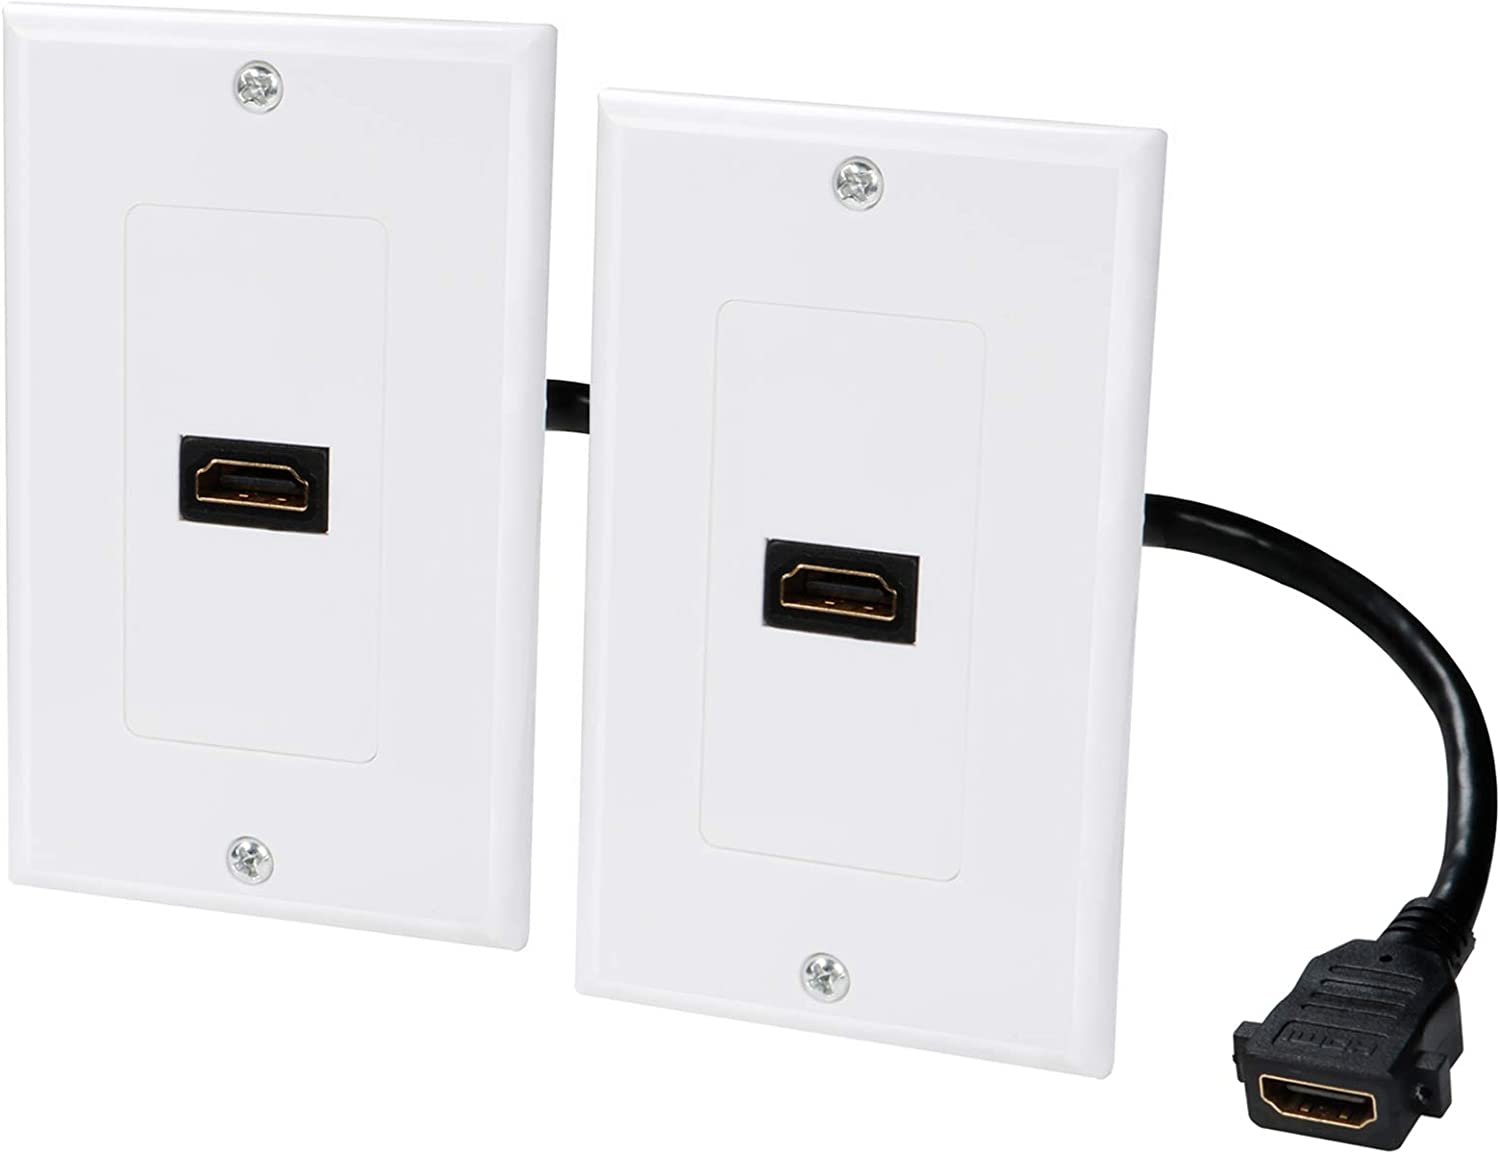 HDMI Wall Plate 1 Port 4k 2-Pack, HDMI Faceplate Single Outlet Standard Wall Plate (Support 4K UHD Video,ARC) with Pigtail HDMI Keystone Jack for HDTV,Projector,PS4/Xbox, Home Theater Systems